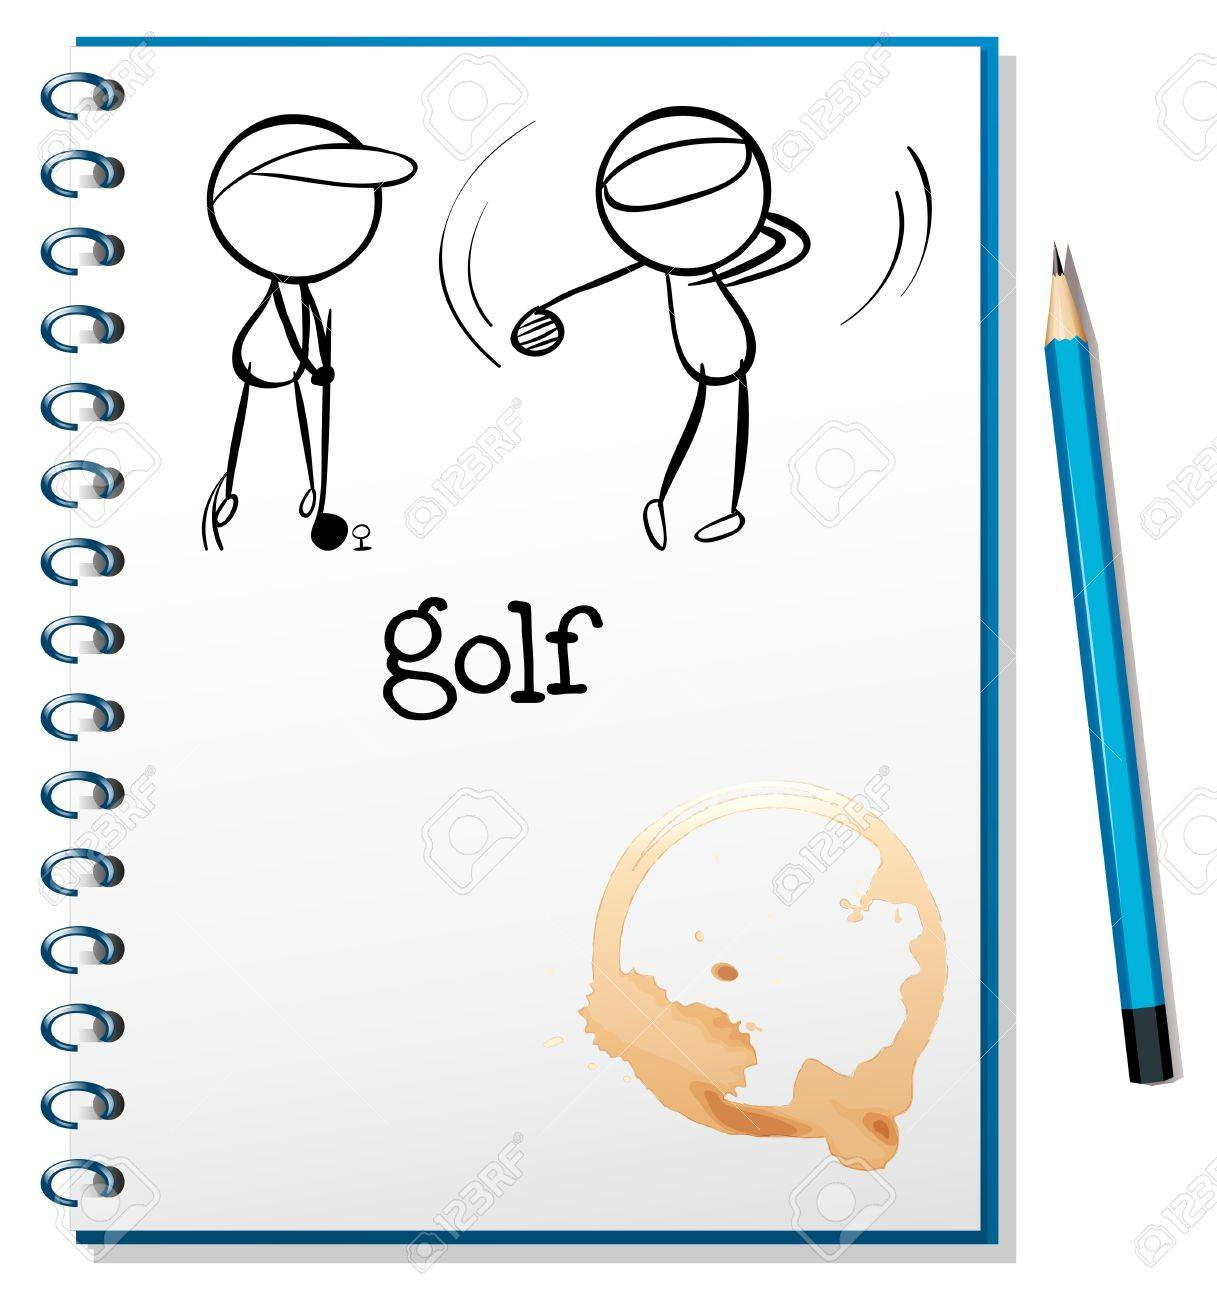 Illusration of a notebook with a sketch of two people playing golf on a white background Stock Vector - 18983337